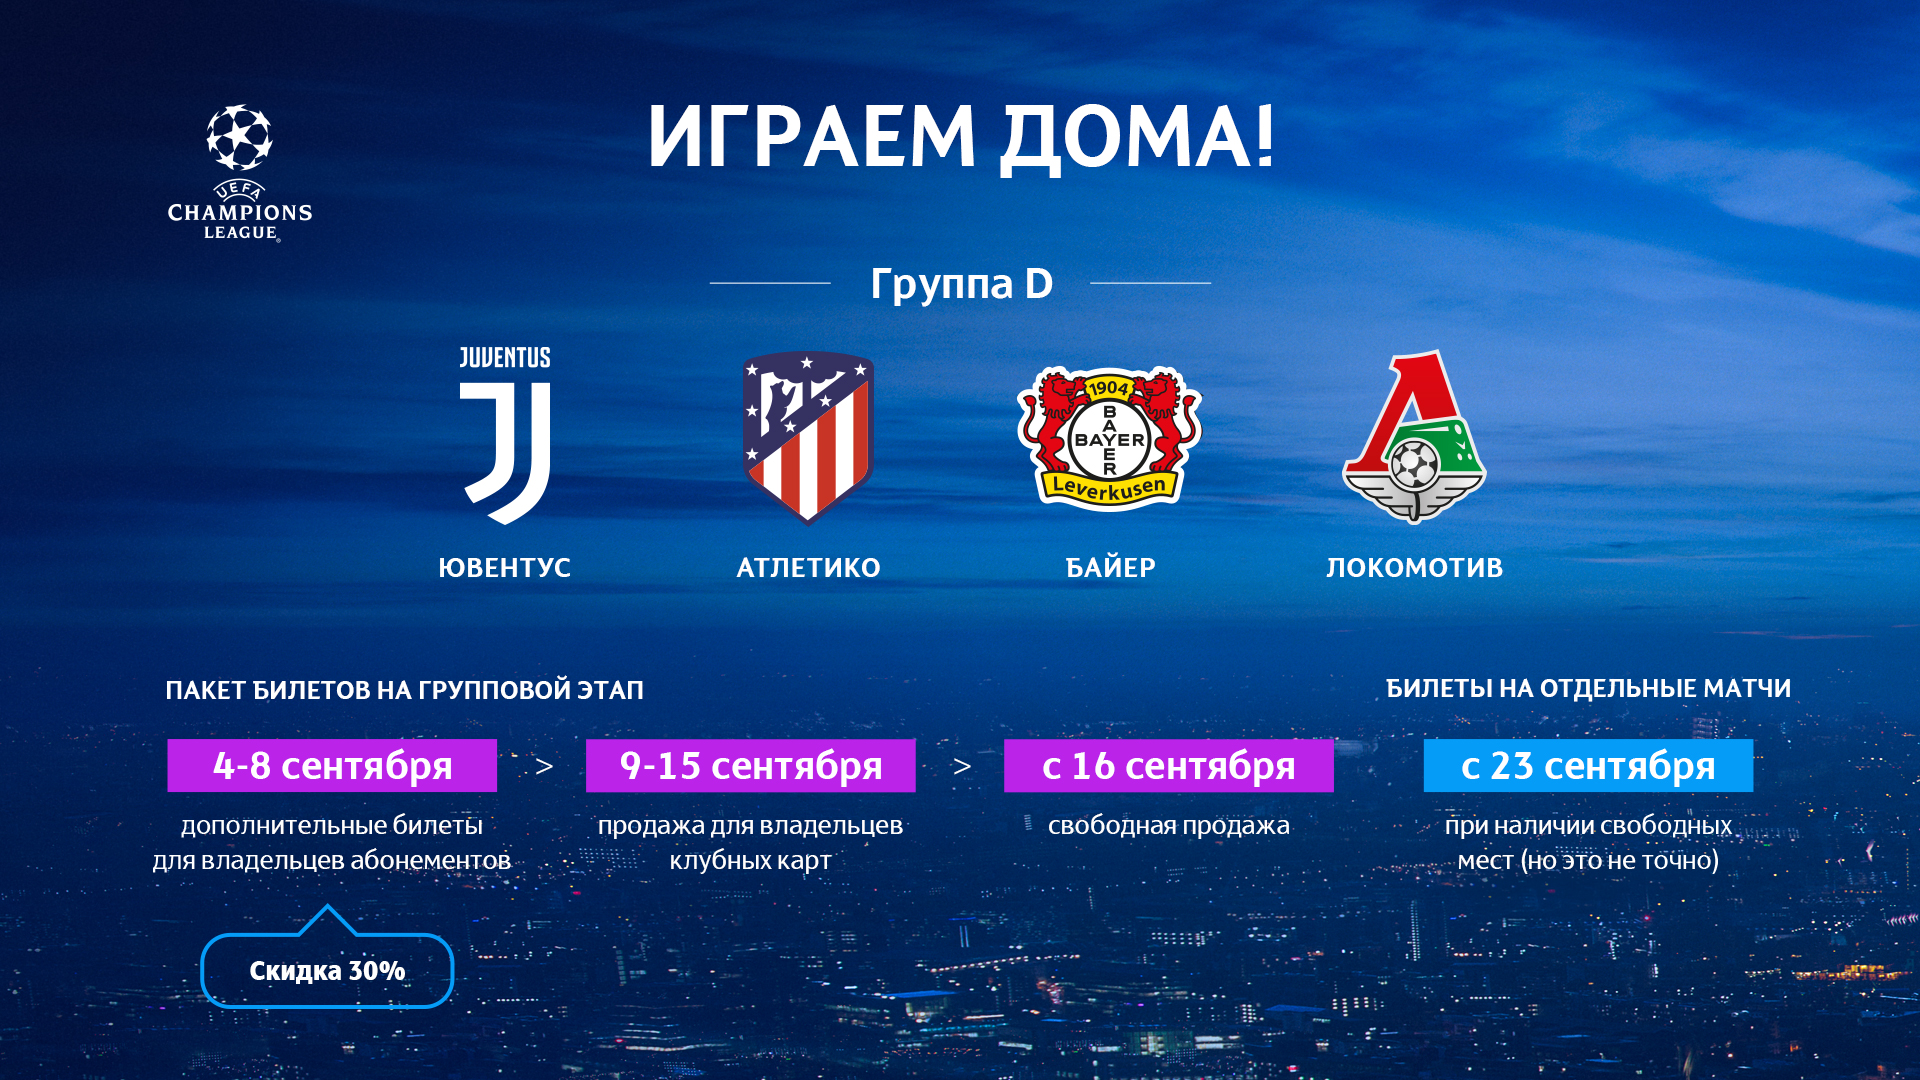 CHAMPIONS LEAGUE HOME TICKET INFO